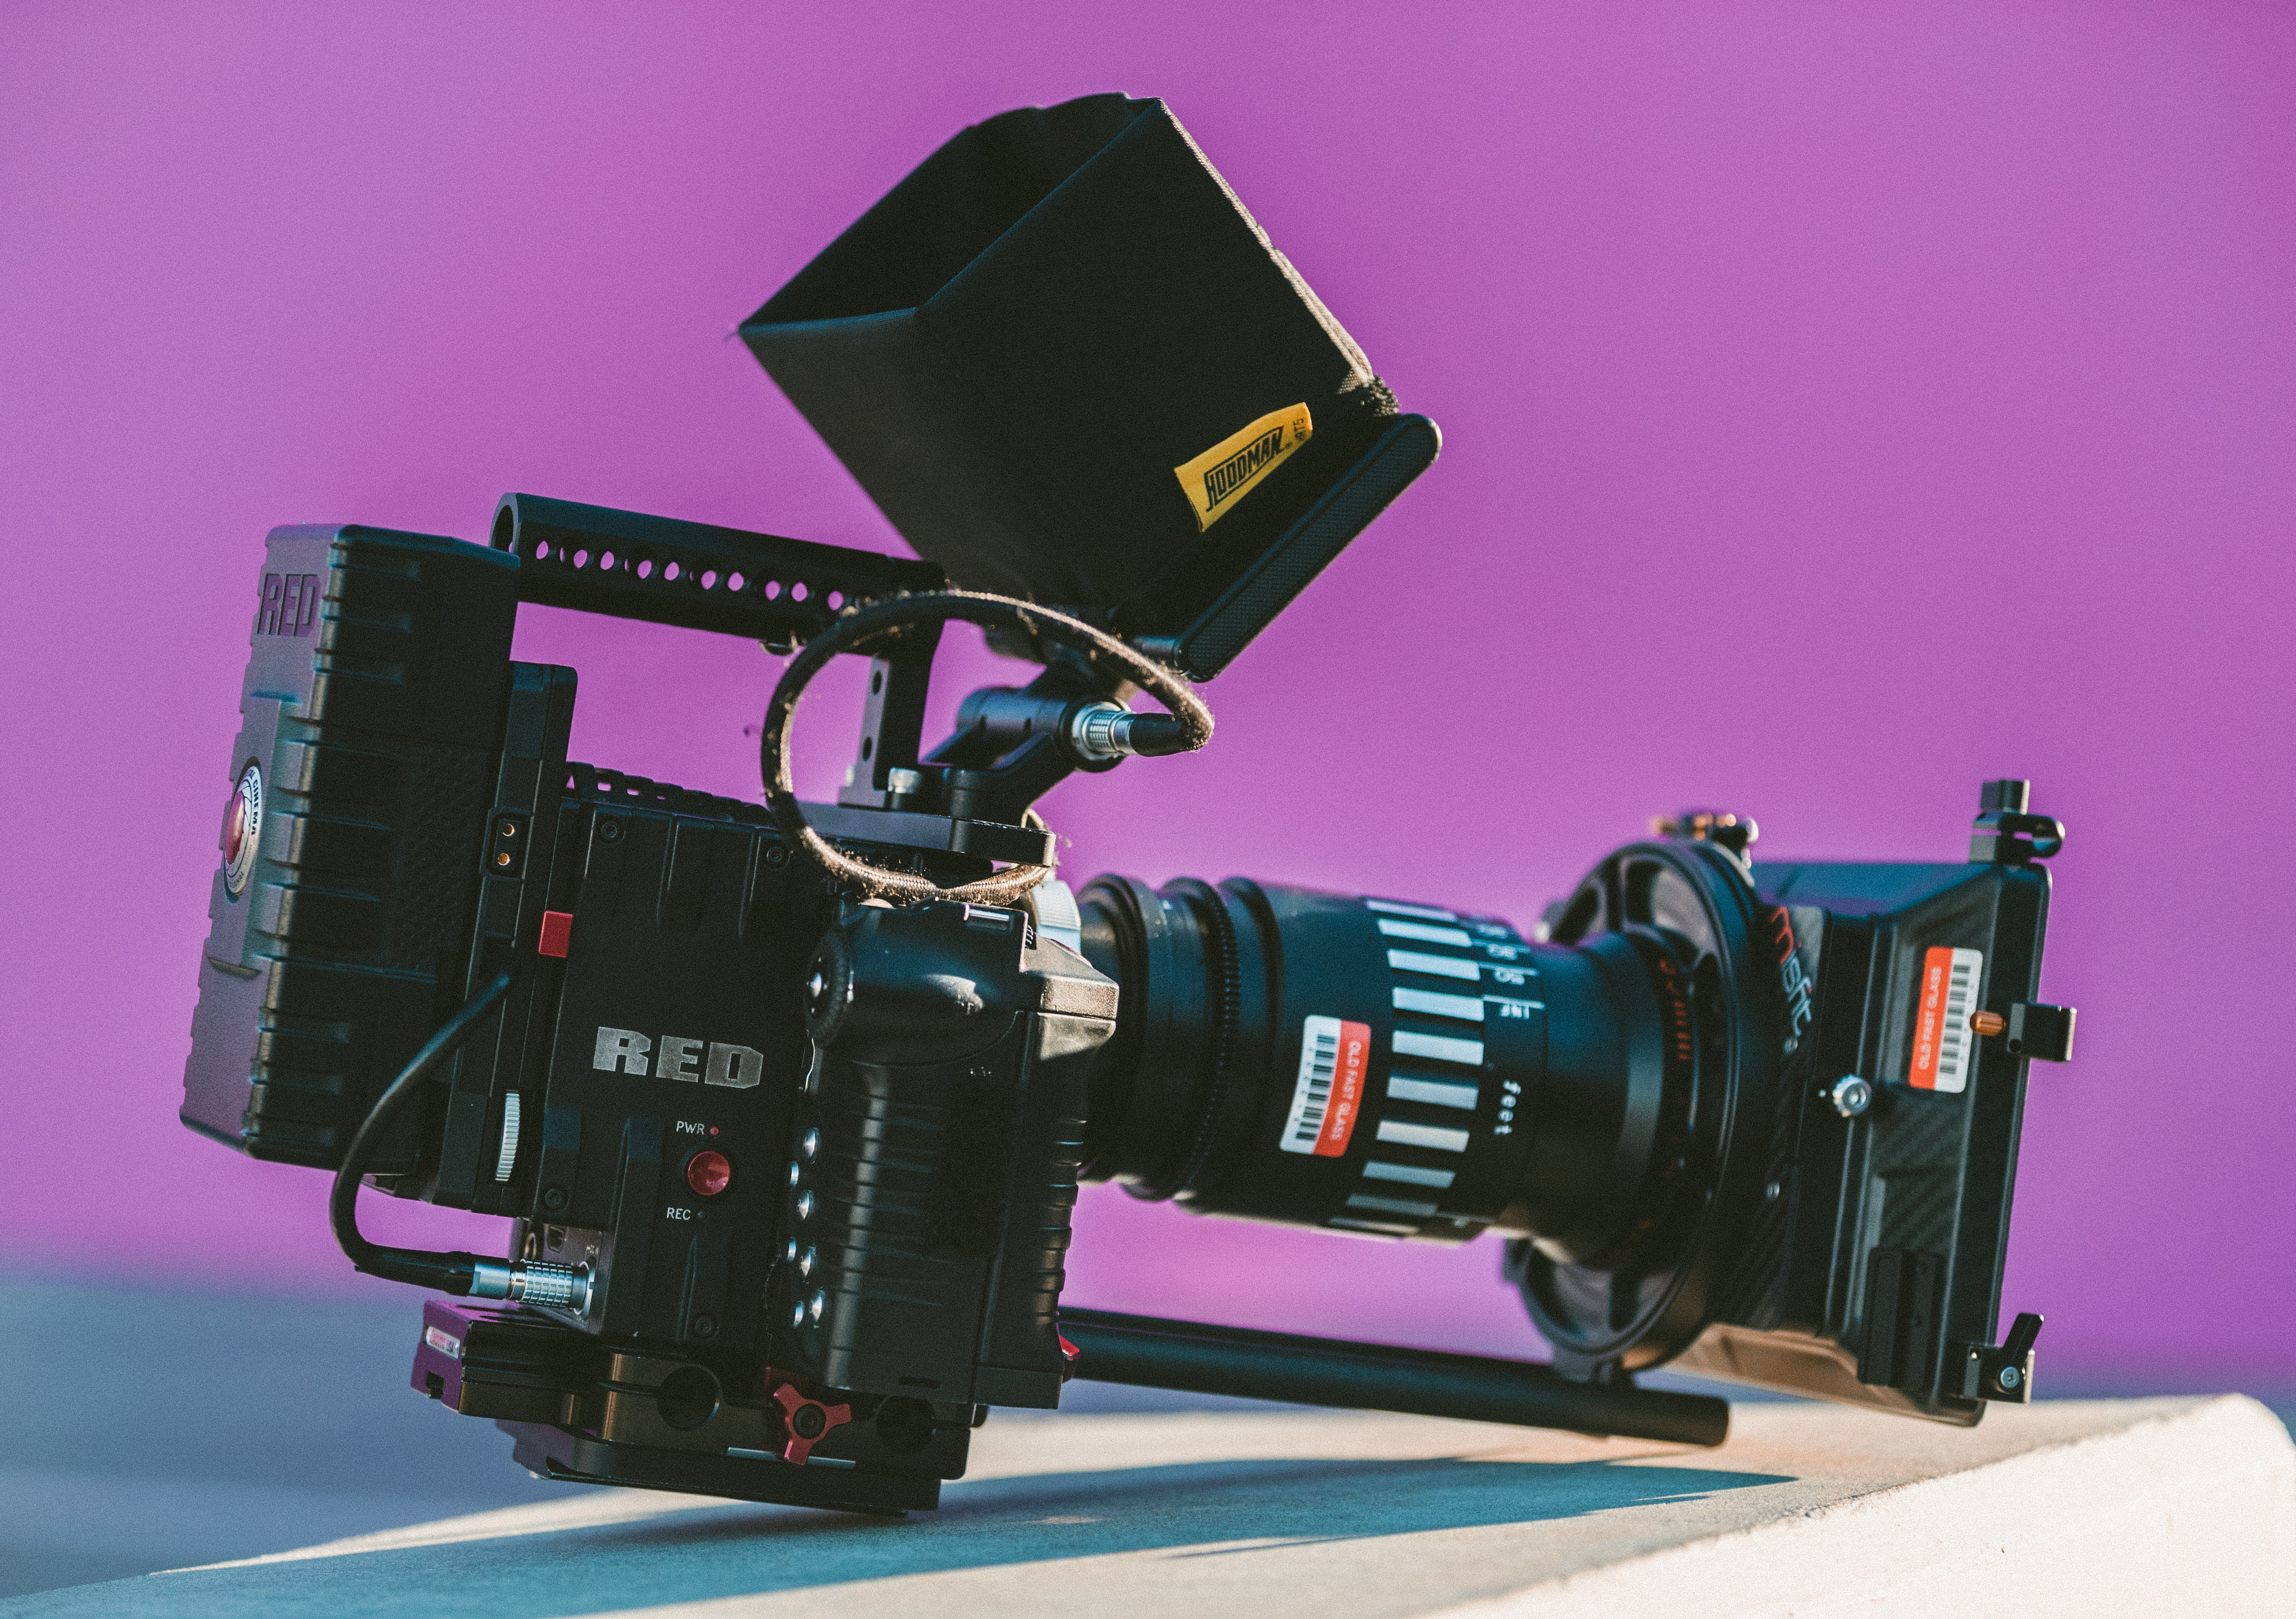 Filmmaking camera with long lens and technology sitting on surface in front of purple background